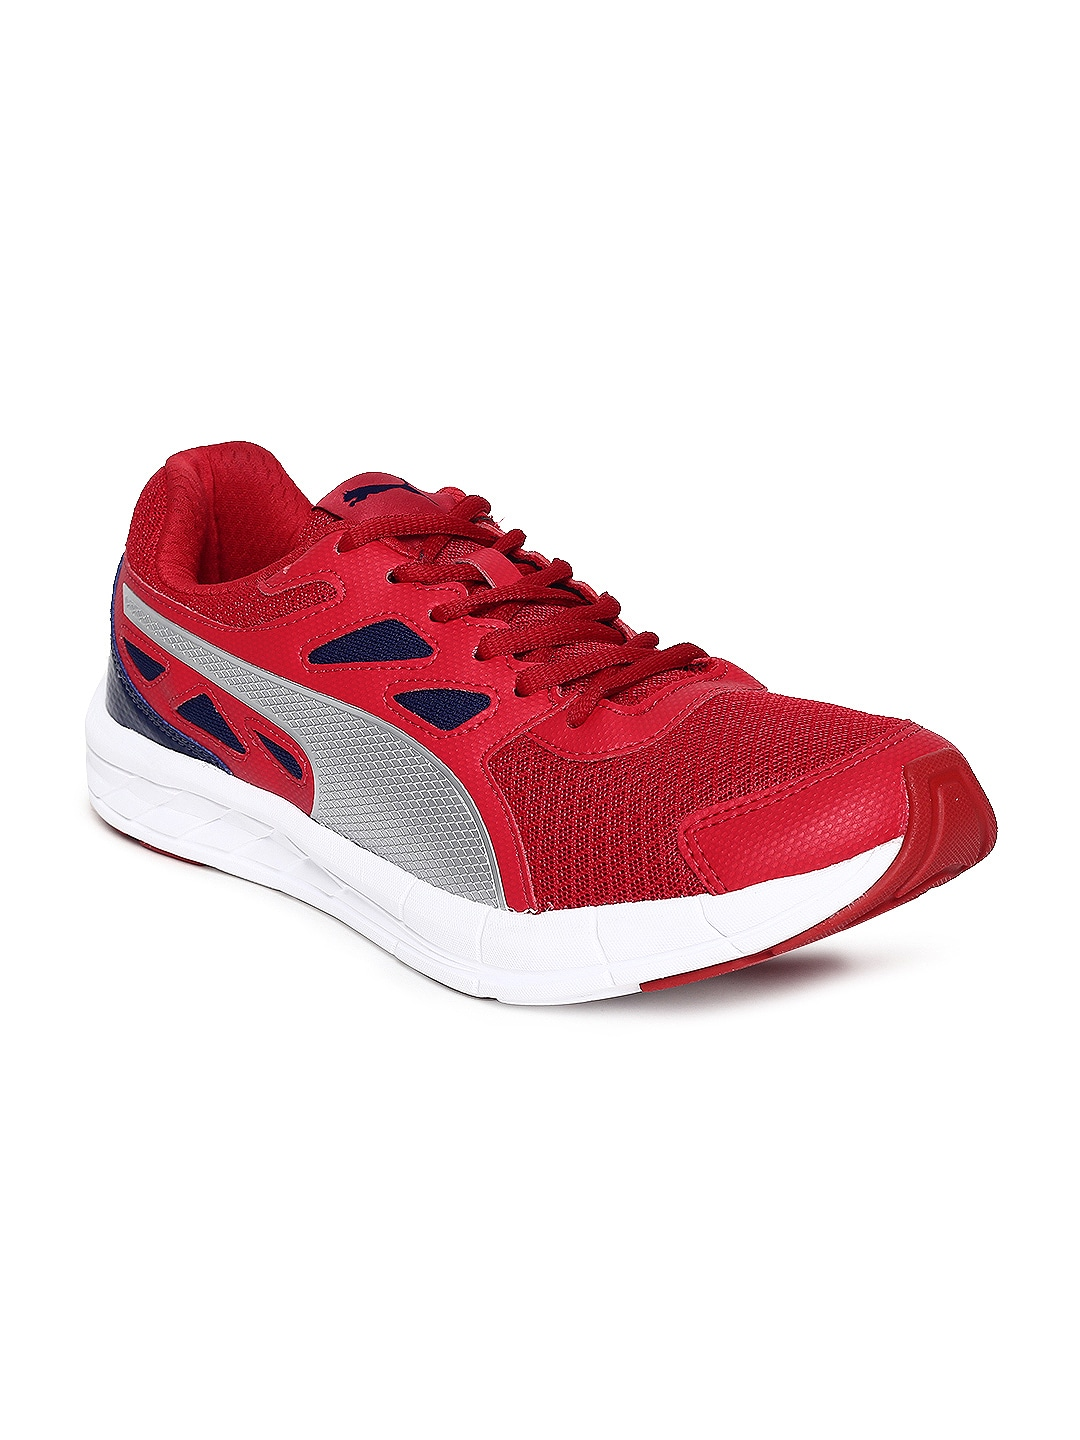 Puma Unisex Red Driver 2 IDP Toreador Running Shoes 8d8494c8a